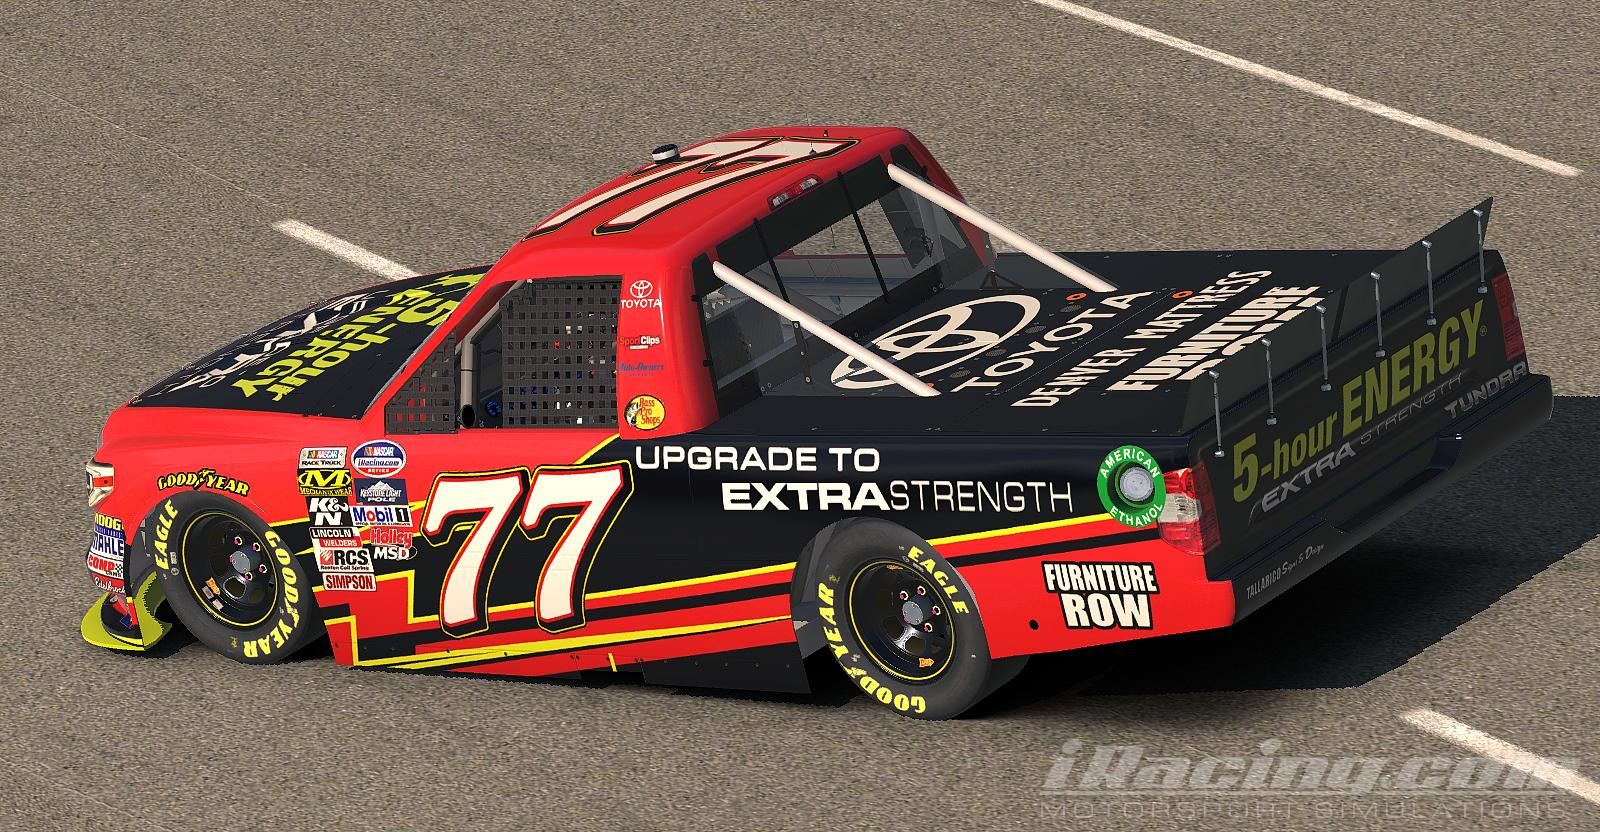 Preview of 5 Hour Energy Toyota Tundra by Tanner Tallarico